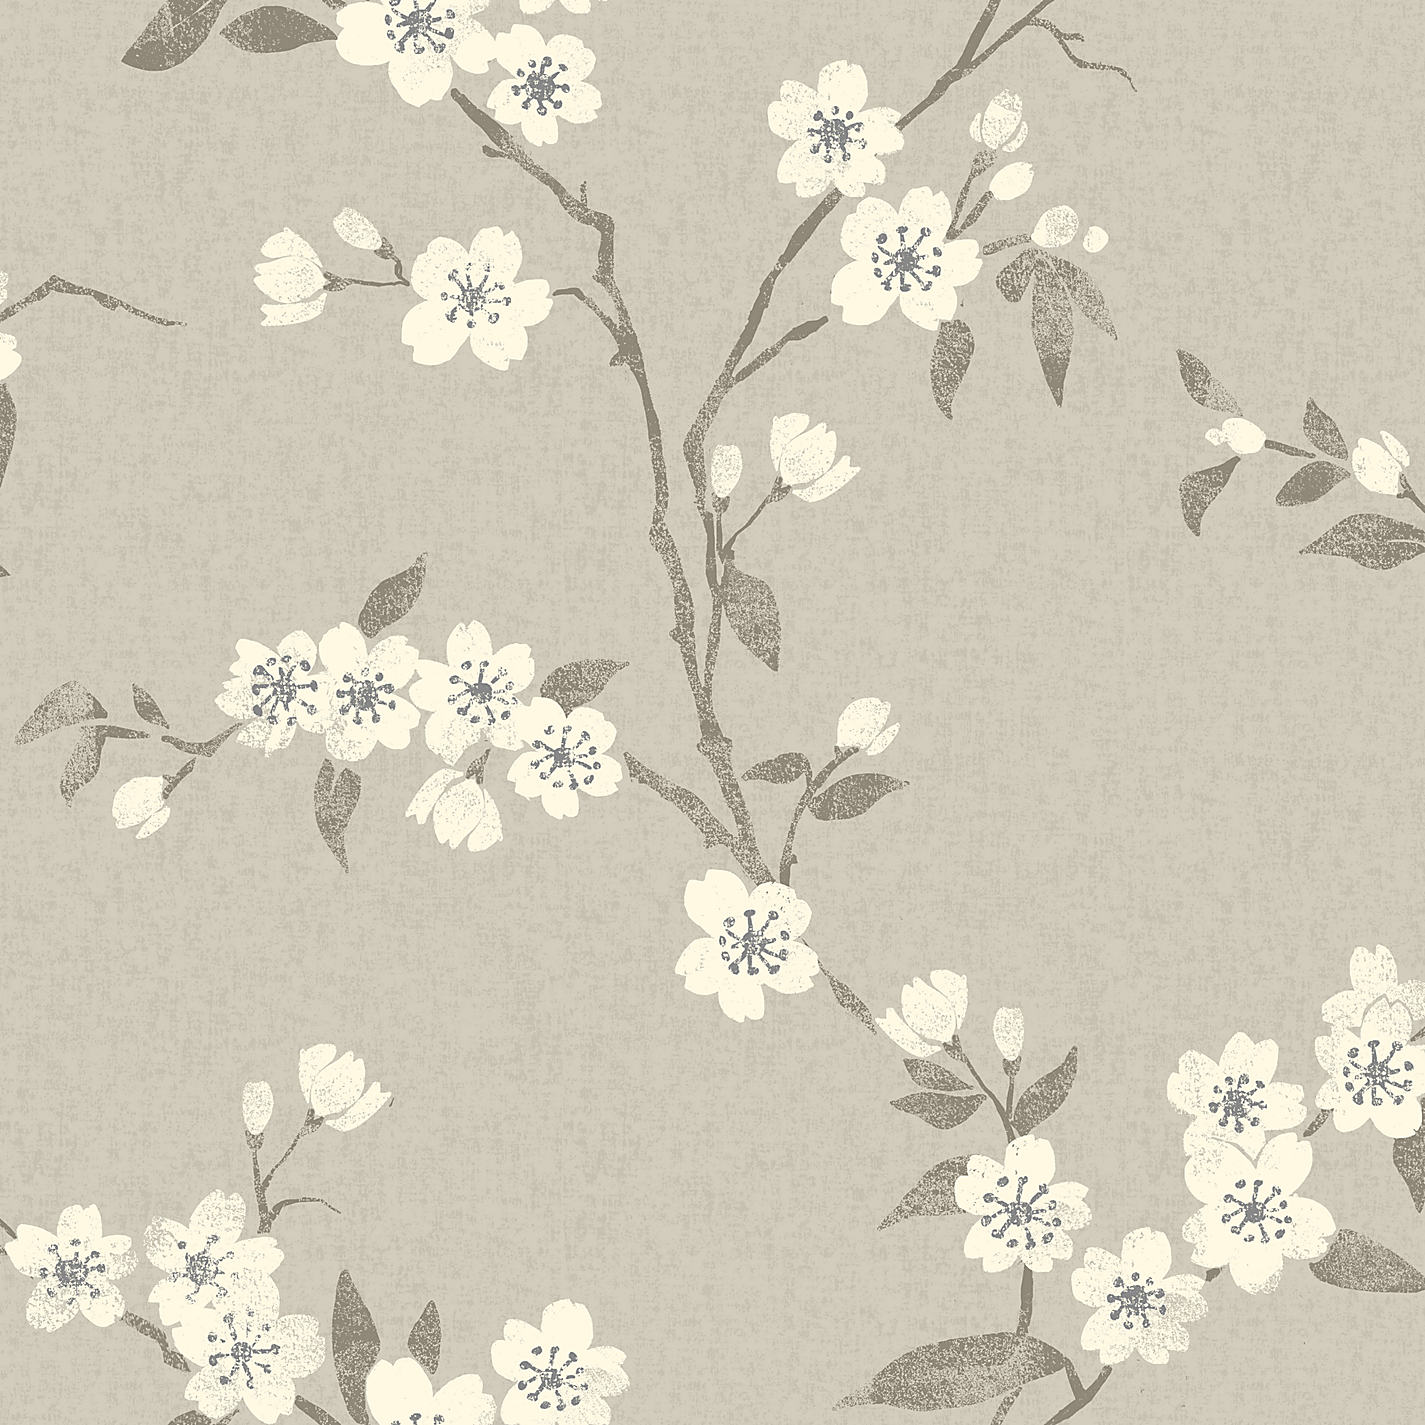 Buy john lewis cherry blossom wallpaper john lewis buy john lewis cherry blossom wallpaper online at johnlewis gumiabroncs Images